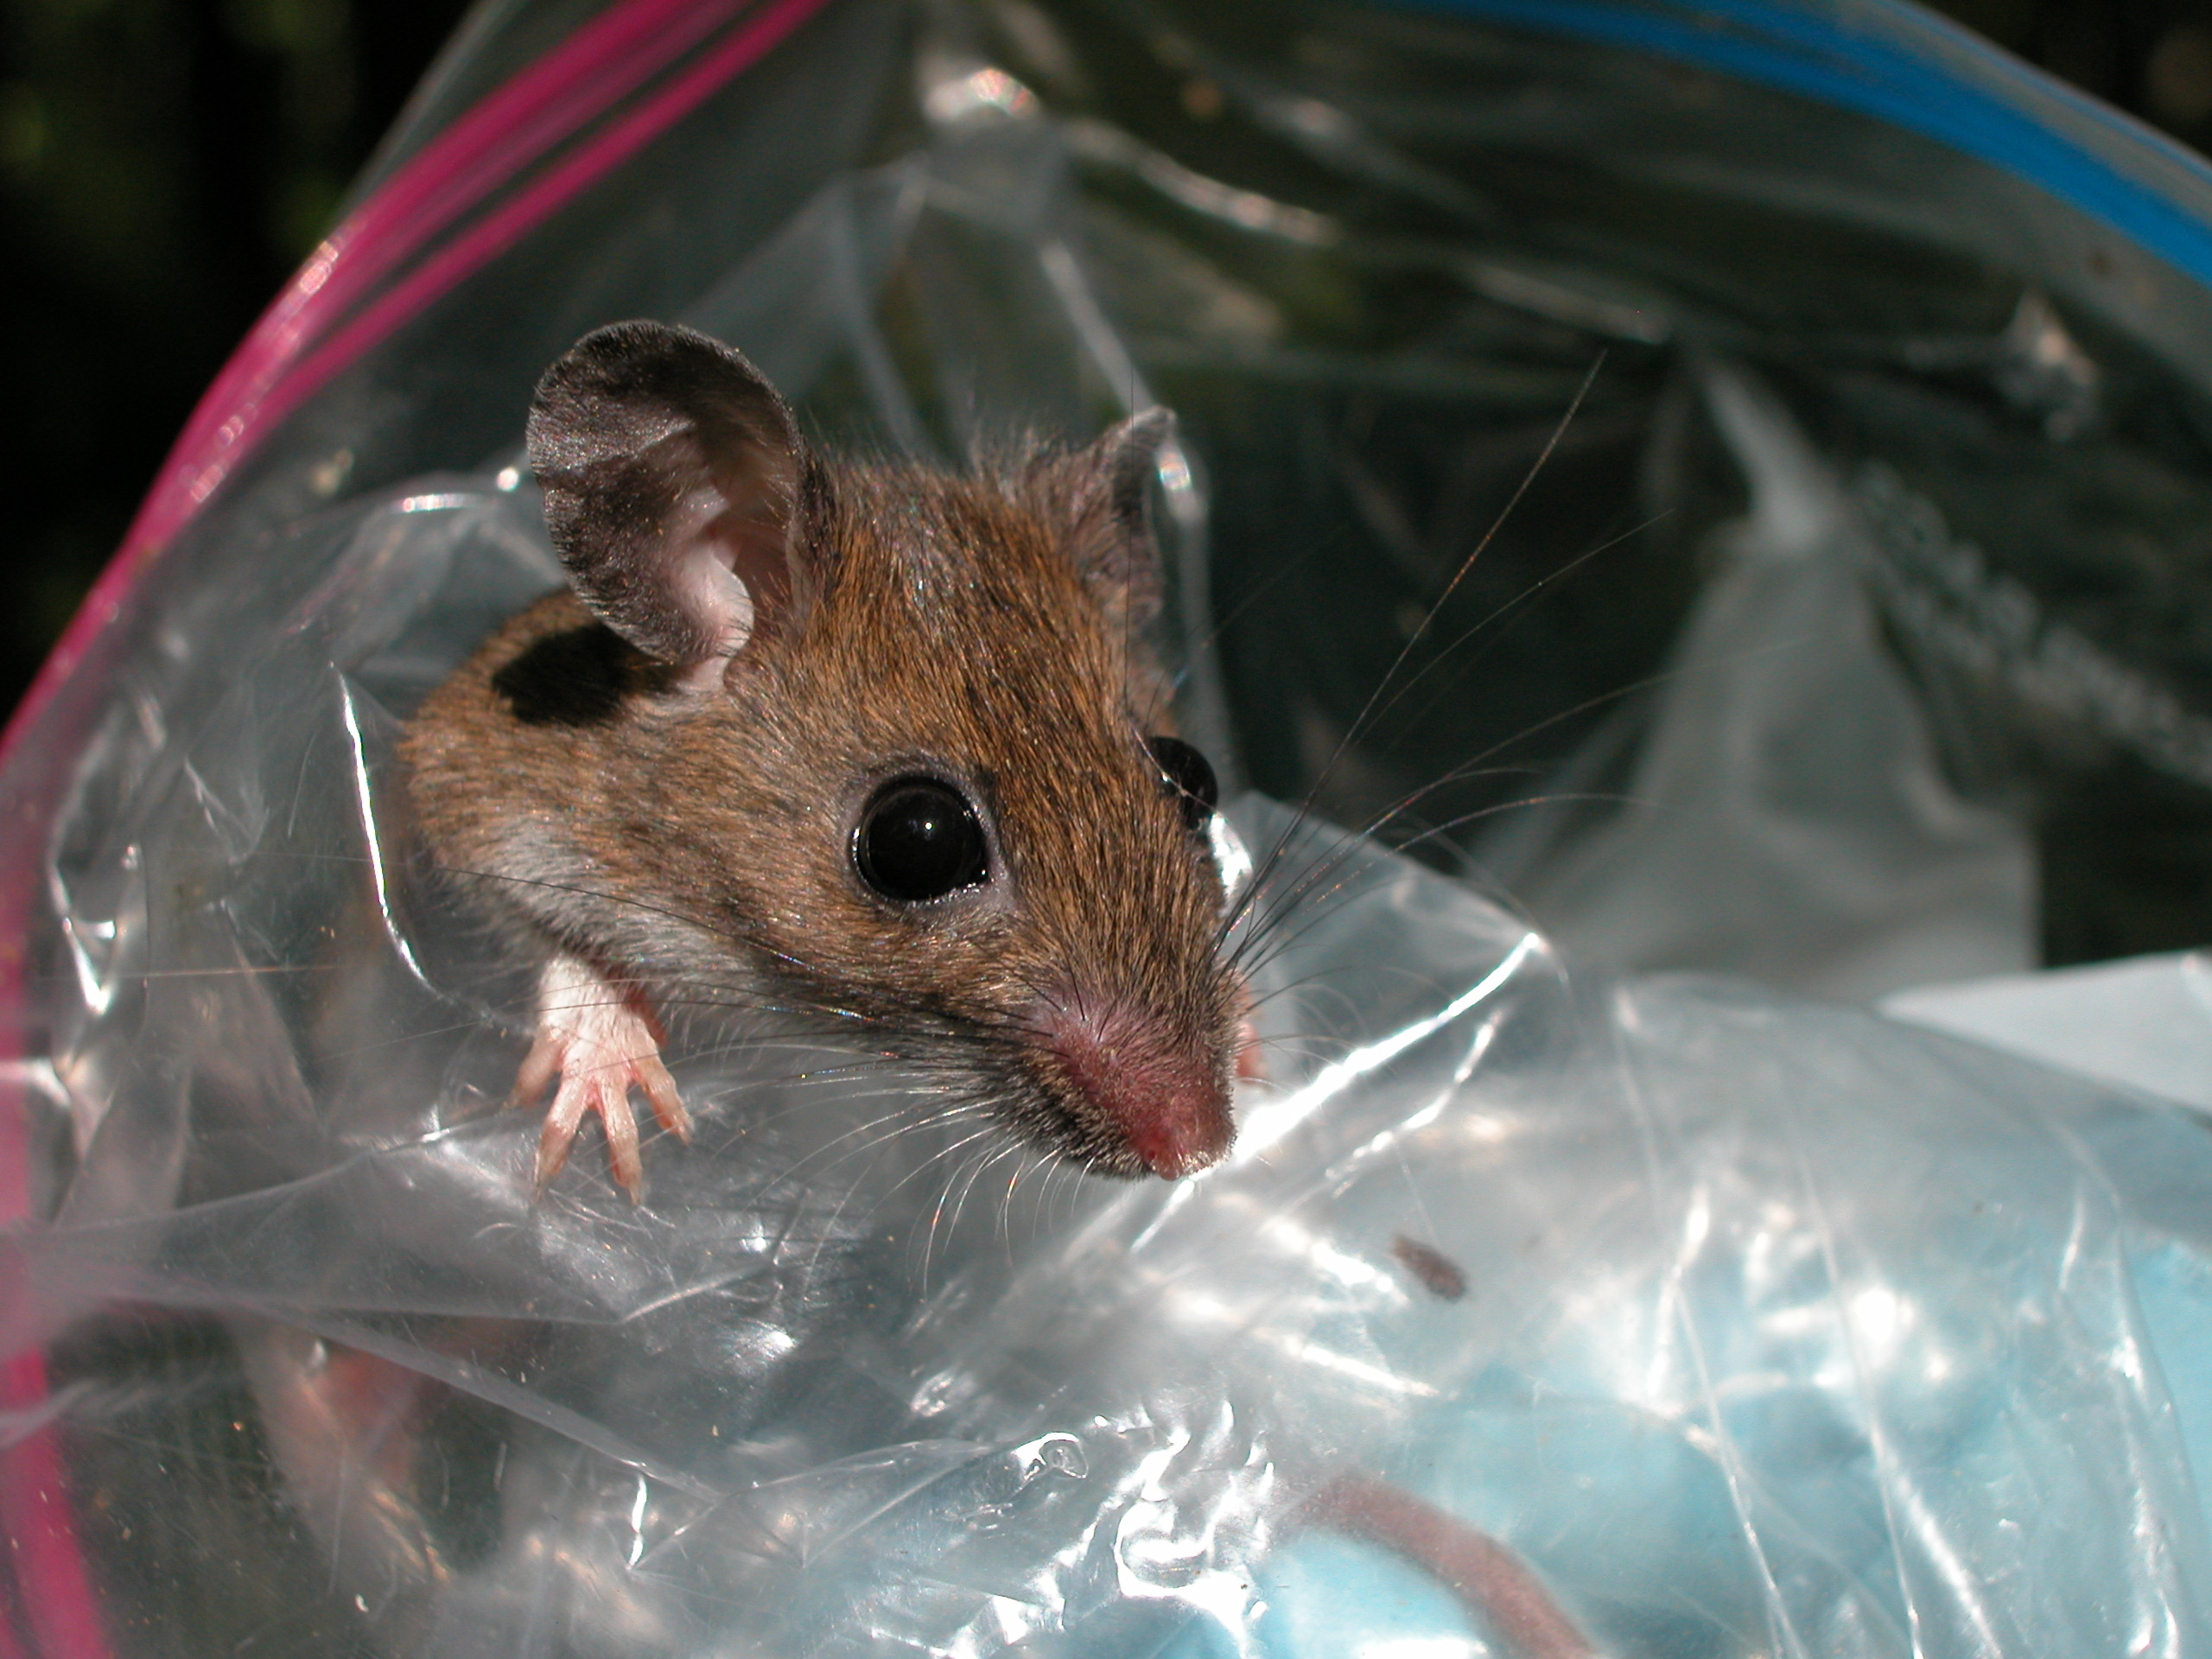 White-footed mouse - Tick collection for Lyme Disease project.